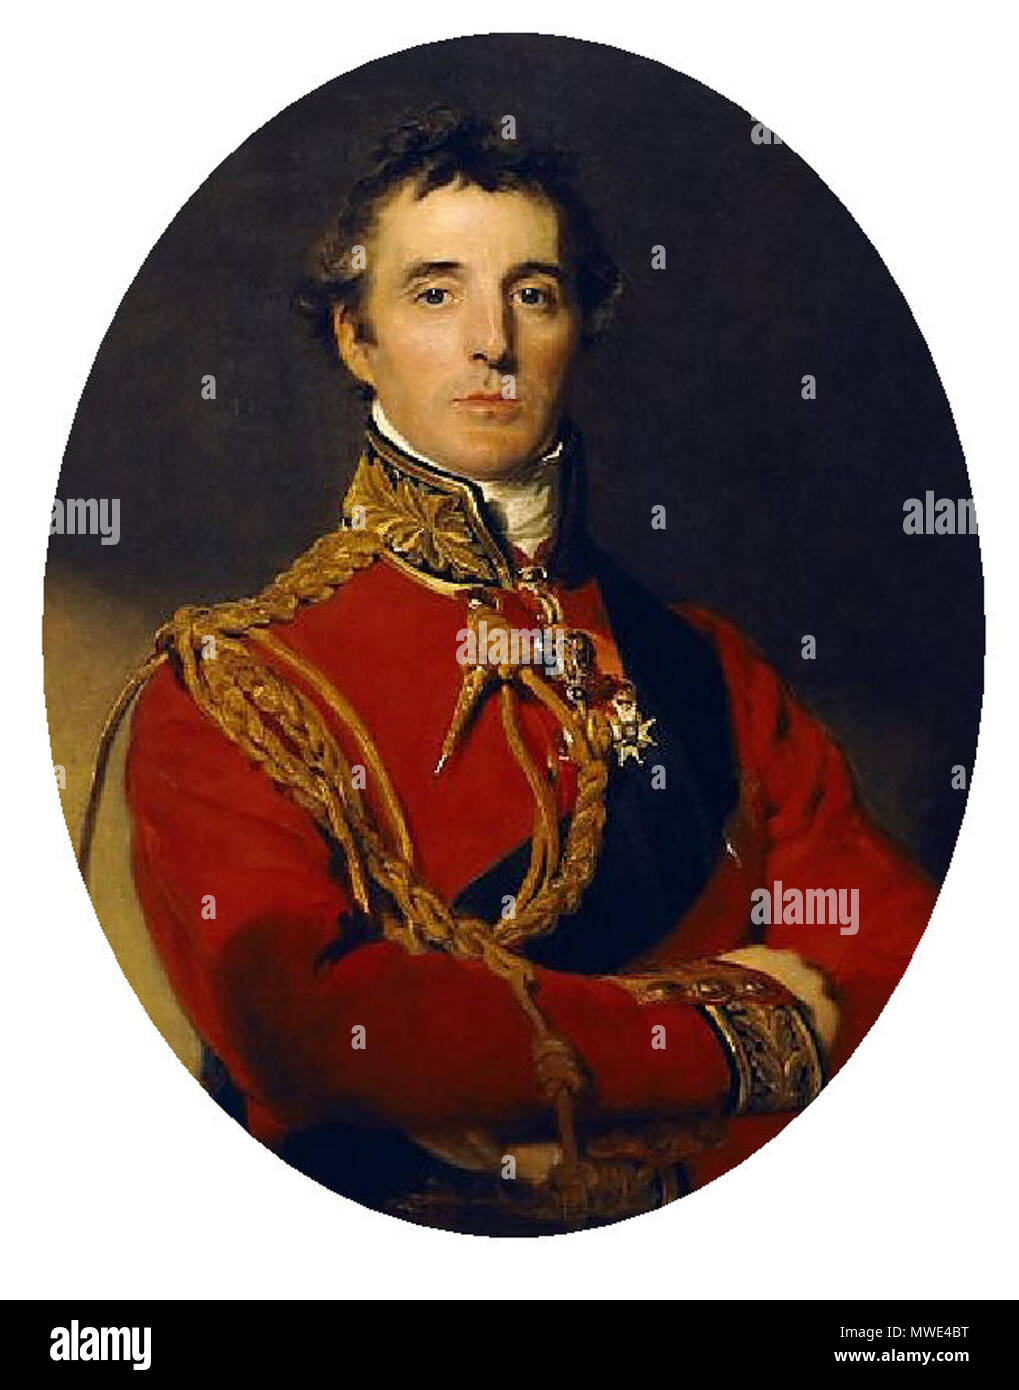 . English: Portrait . 31 January 2012. Lawrence 1815 209 First Duke of Wellington detail of a portrait - Stock Image